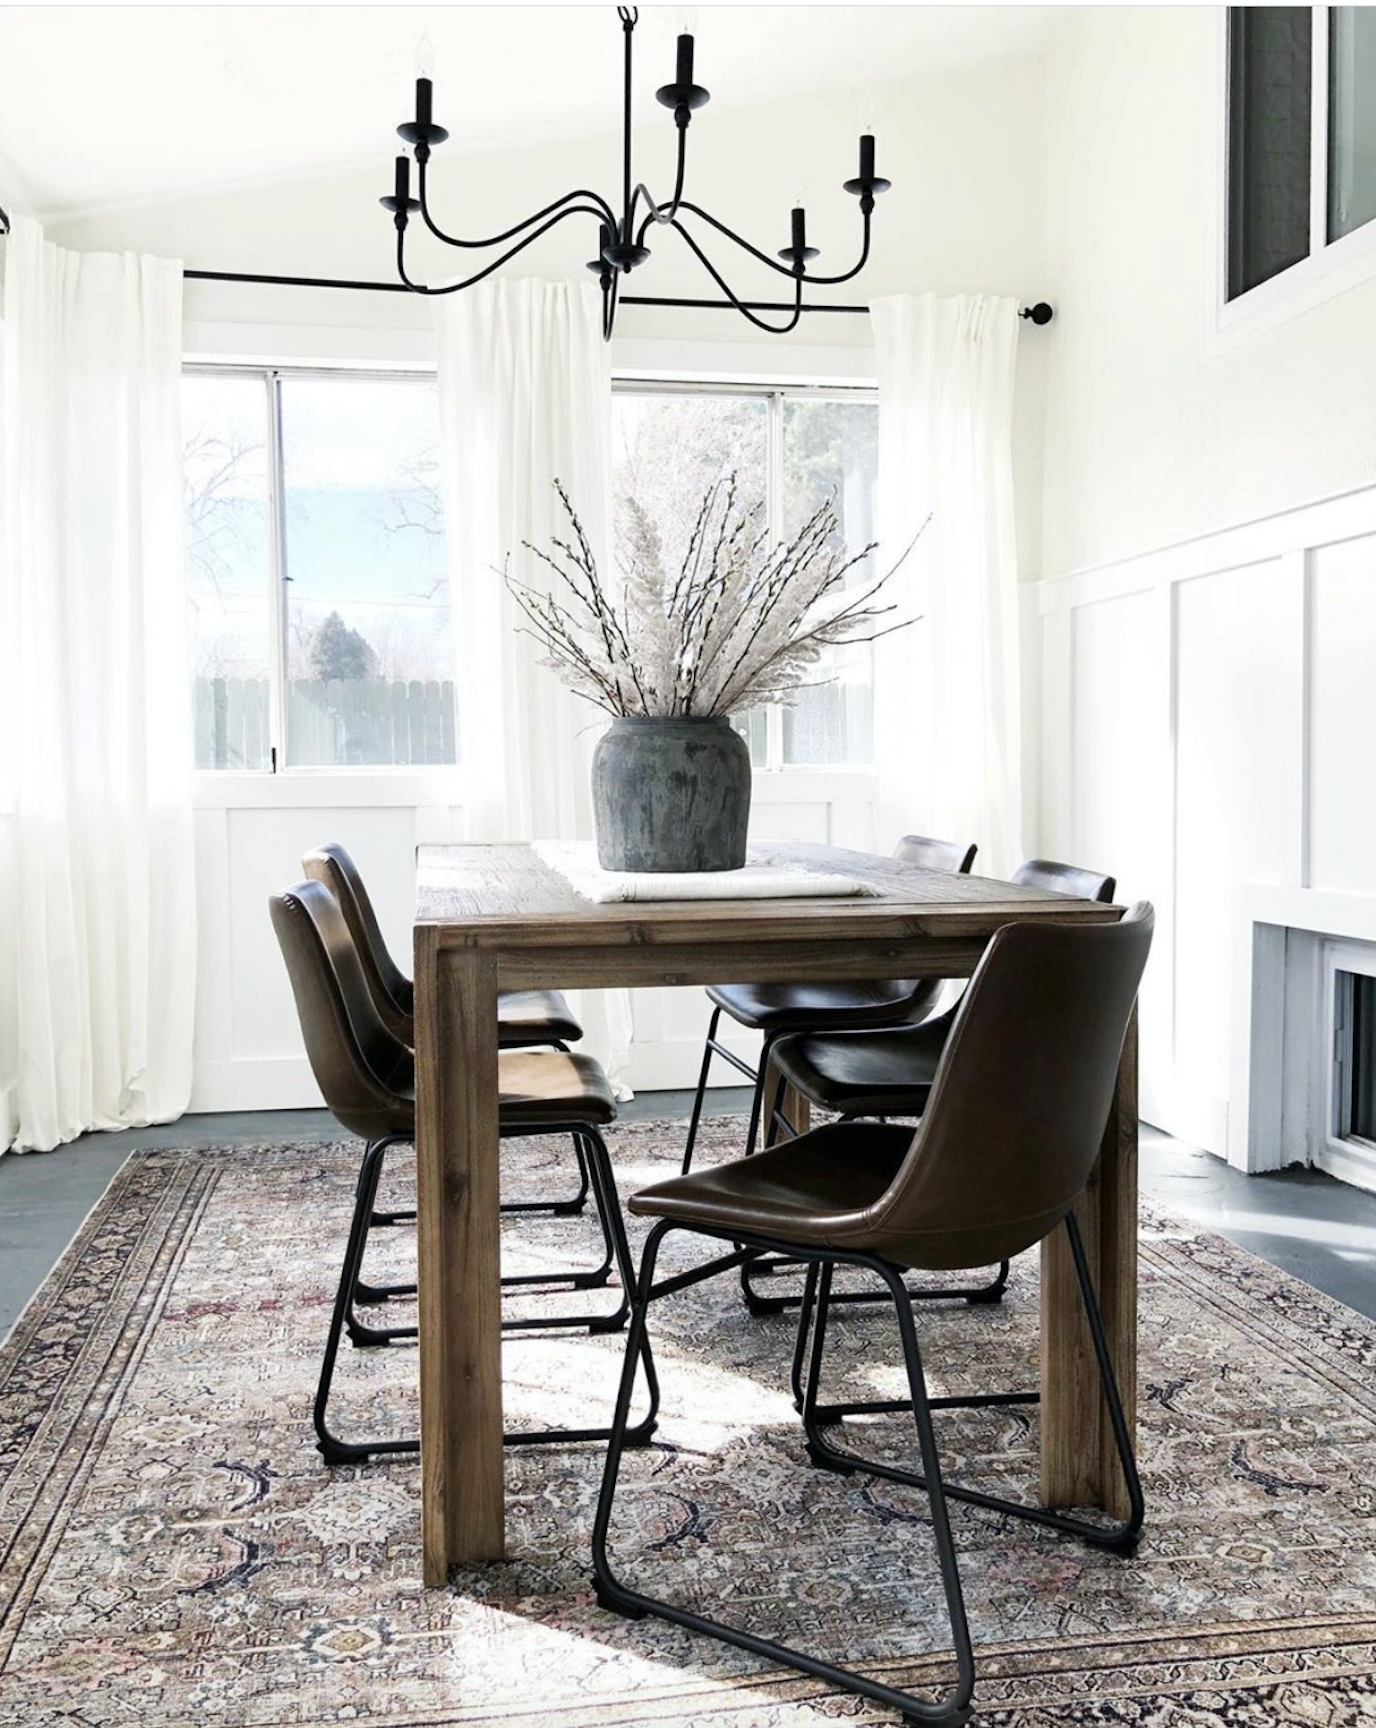 How-to-Update-Your-Rugs-for-Spring olive charcoal Layla with a wood Dining room table black spindle dining chairs and upholstered linen dining chairs